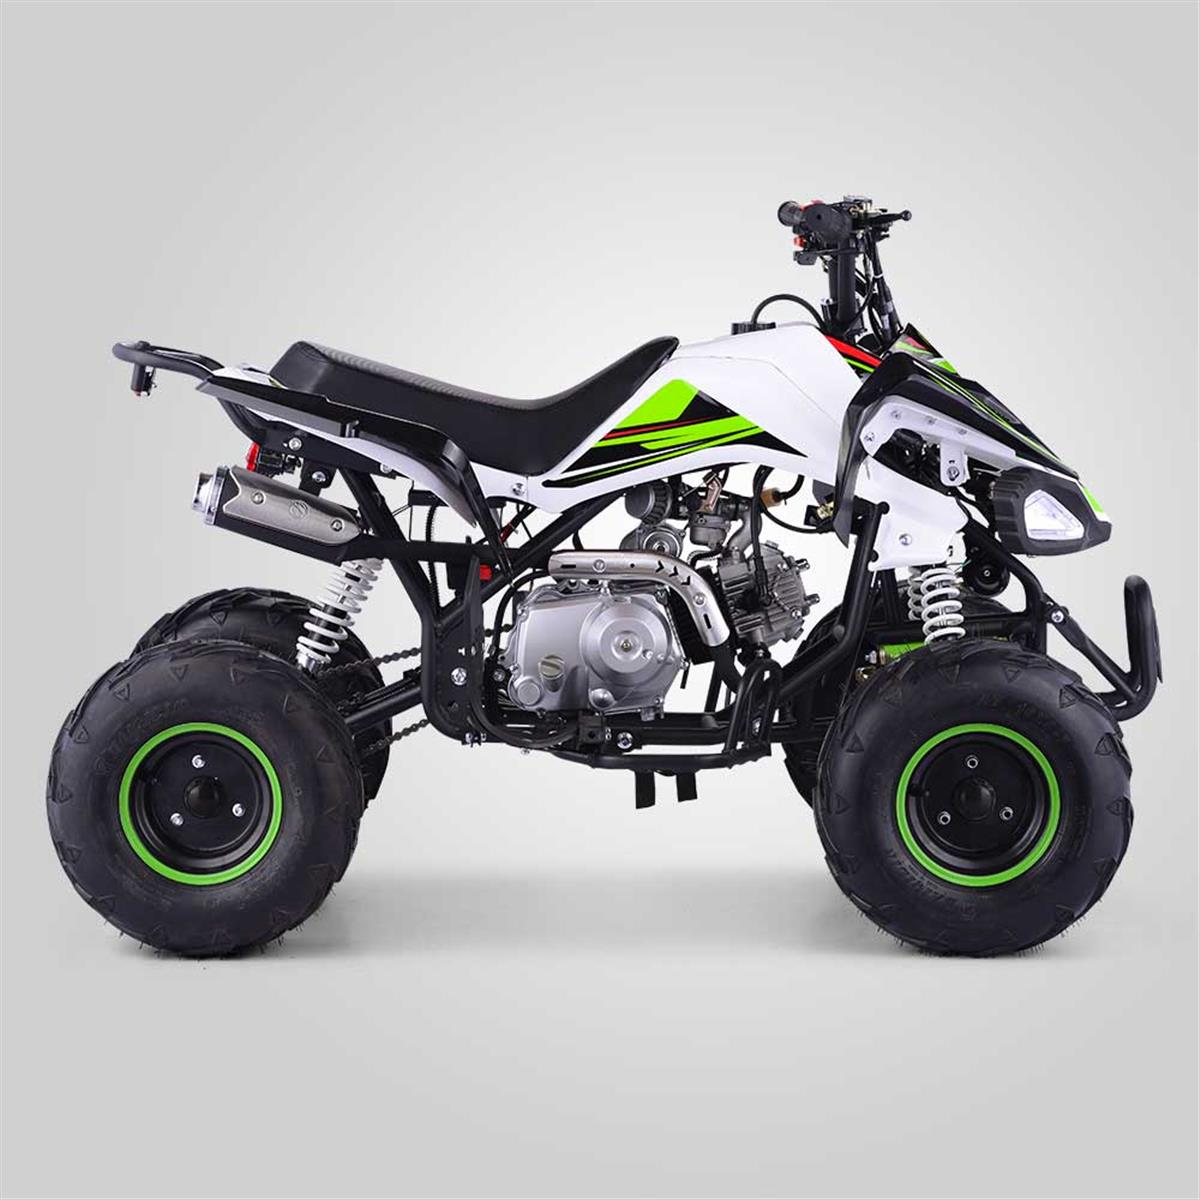 quad enfant typhon 110cc vert smallmx dirt bike pit bike quads minimoto. Black Bedroom Furniture Sets. Home Design Ideas